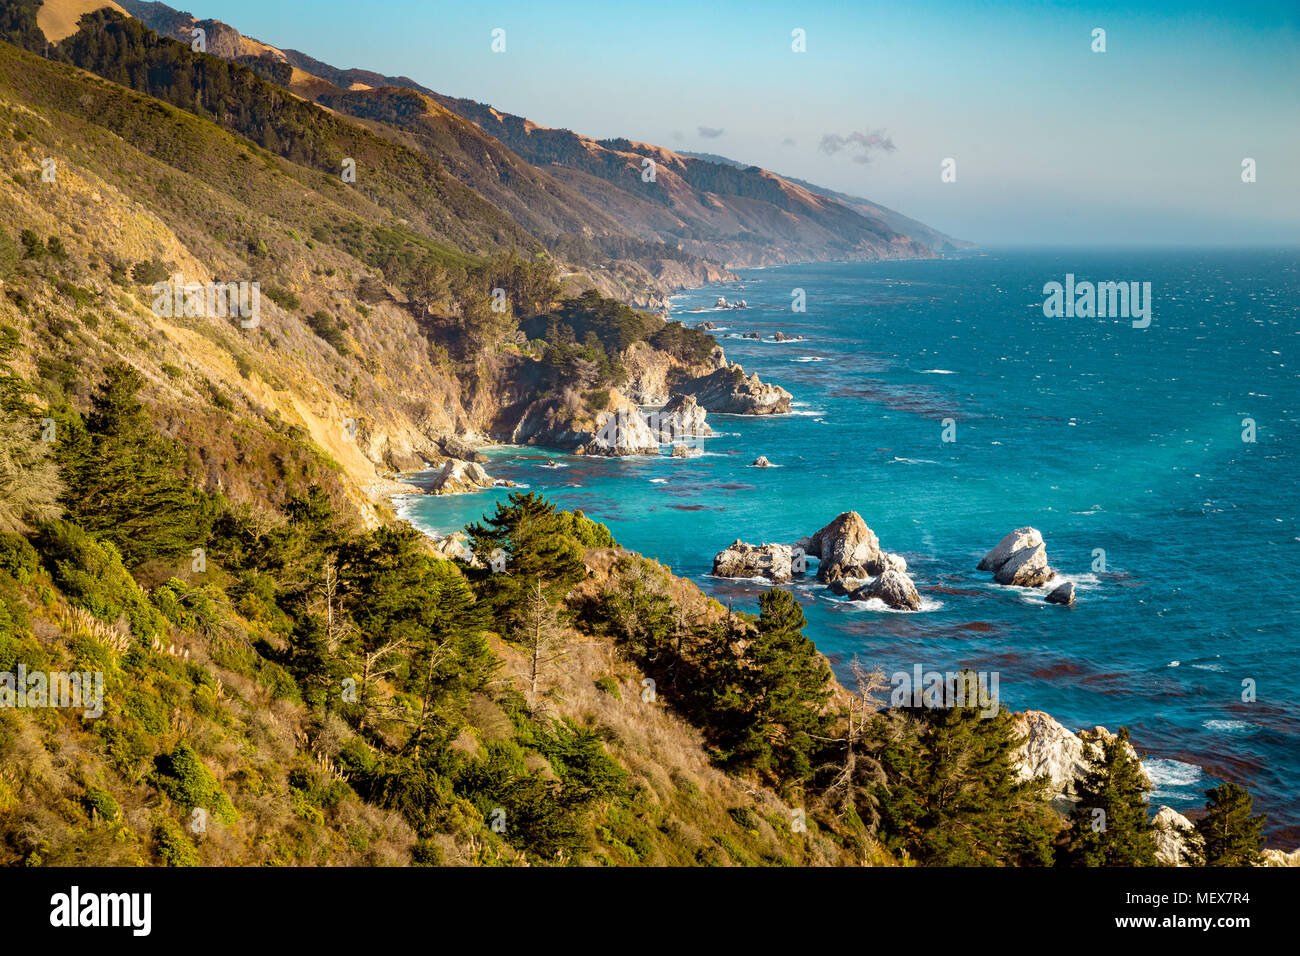 Scenic view of the rugged coastline of Big Sur with Santa Lucia Mountains along famous Highway 1 illuminated in evening light at sunset, California Stock Photo